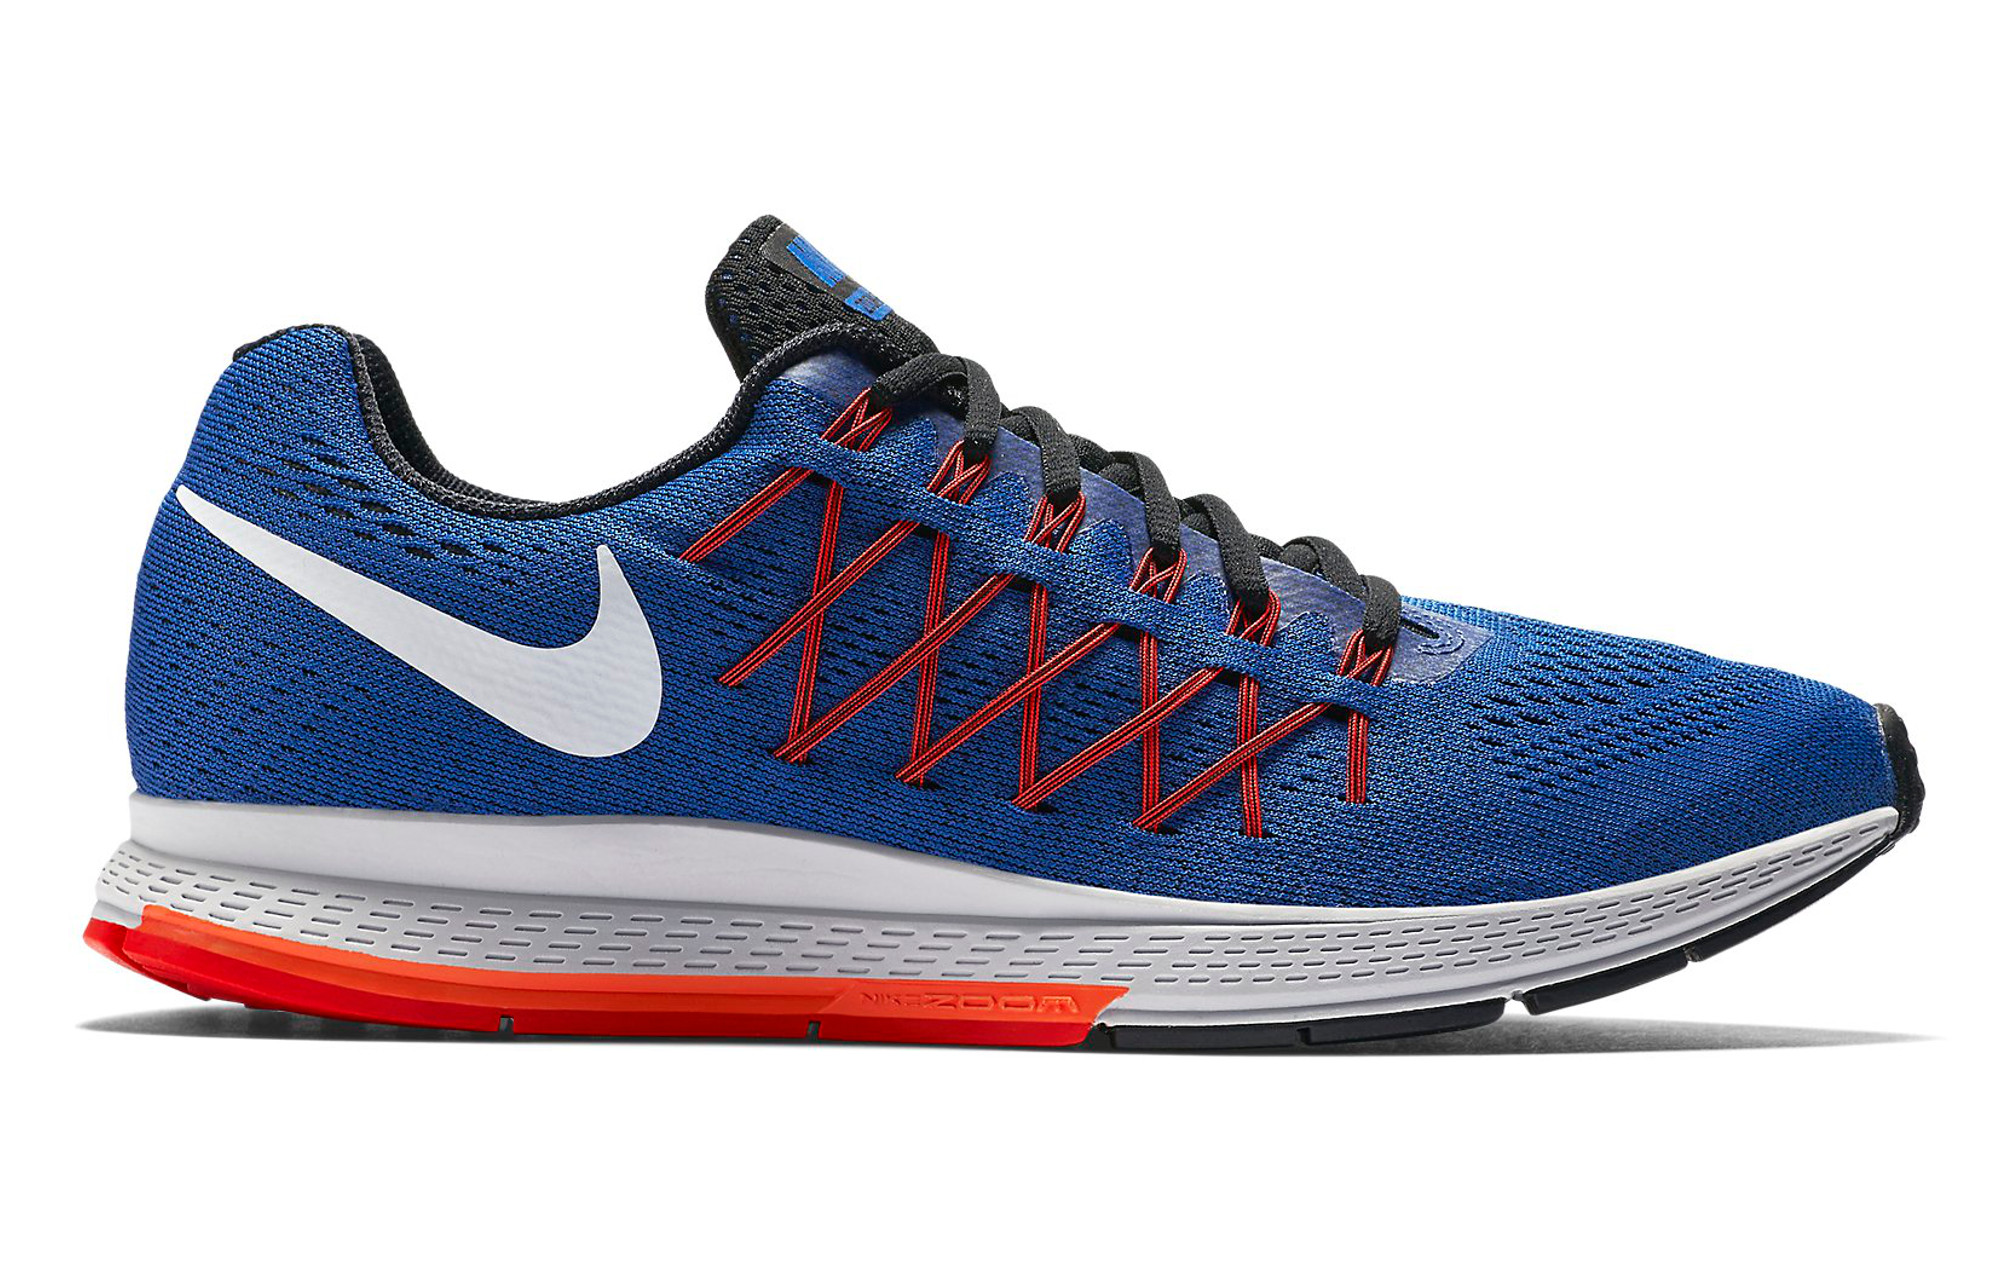 innovative design 2e1f5 c4a1c NIKE shoes AIR ZOOM PEGASUS 32 Blue Men